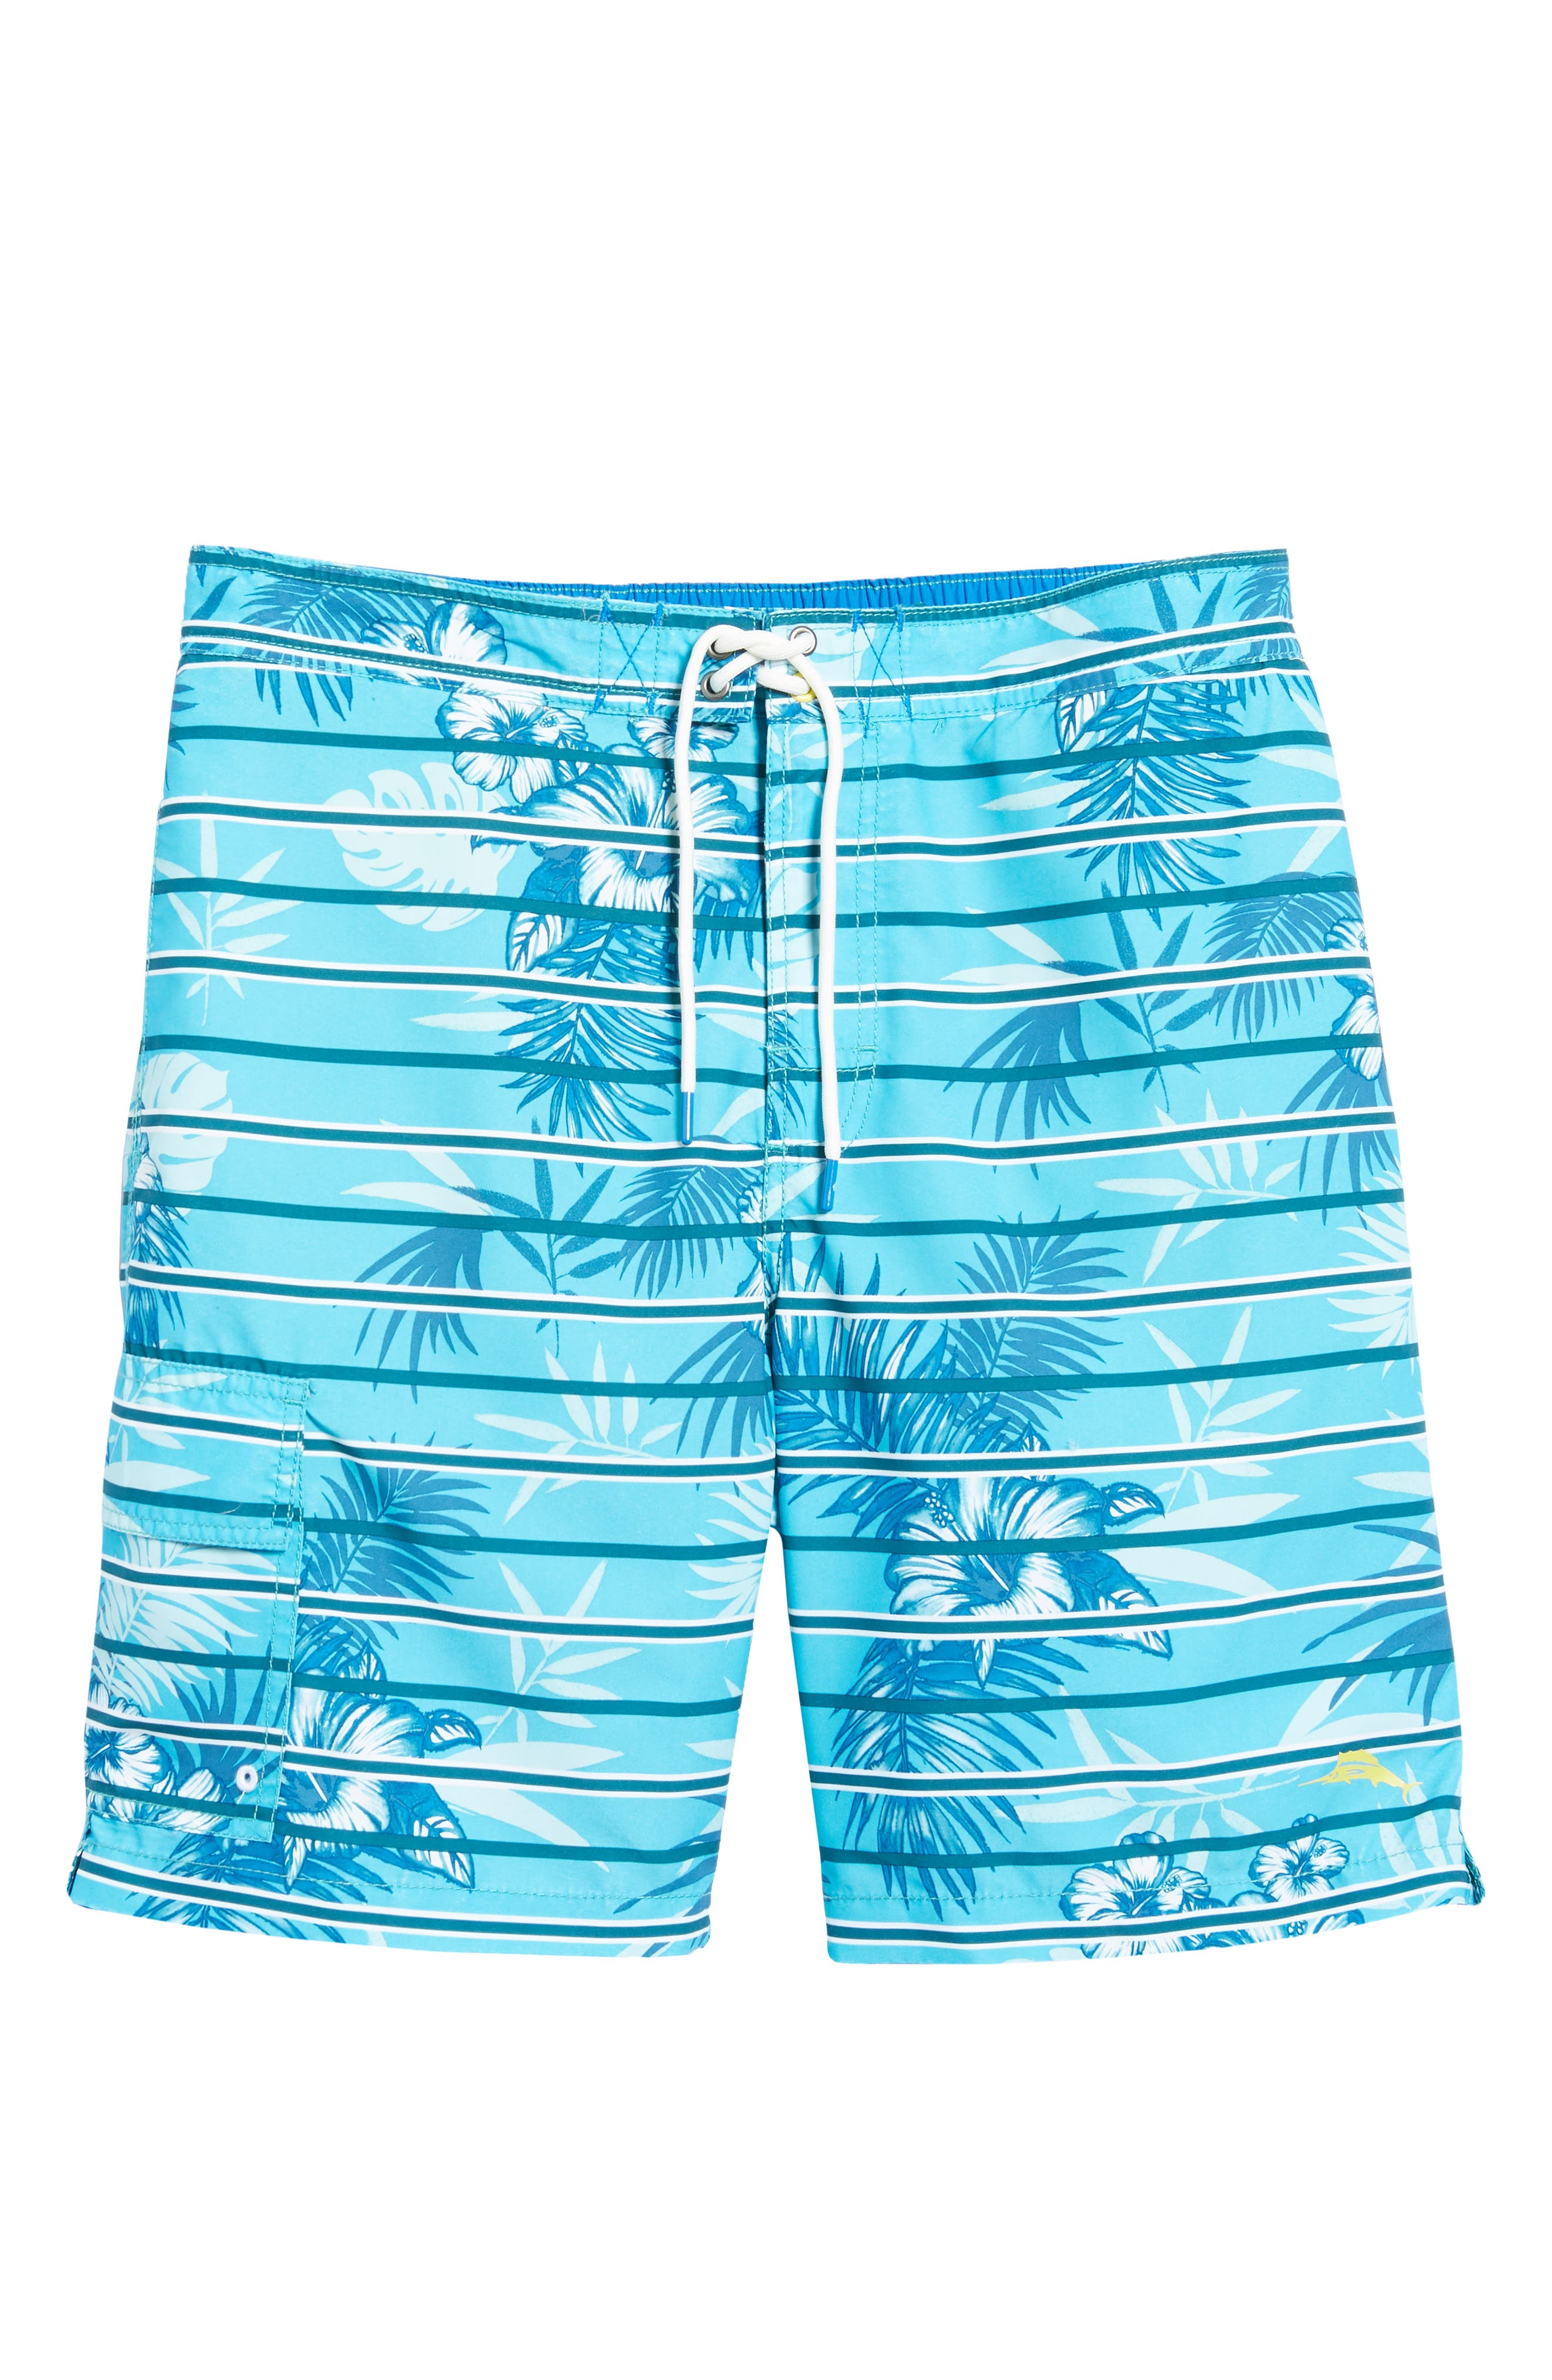 Baja Satillo Stripe Board Shorts,                             Alternate thumbnail 11, color,